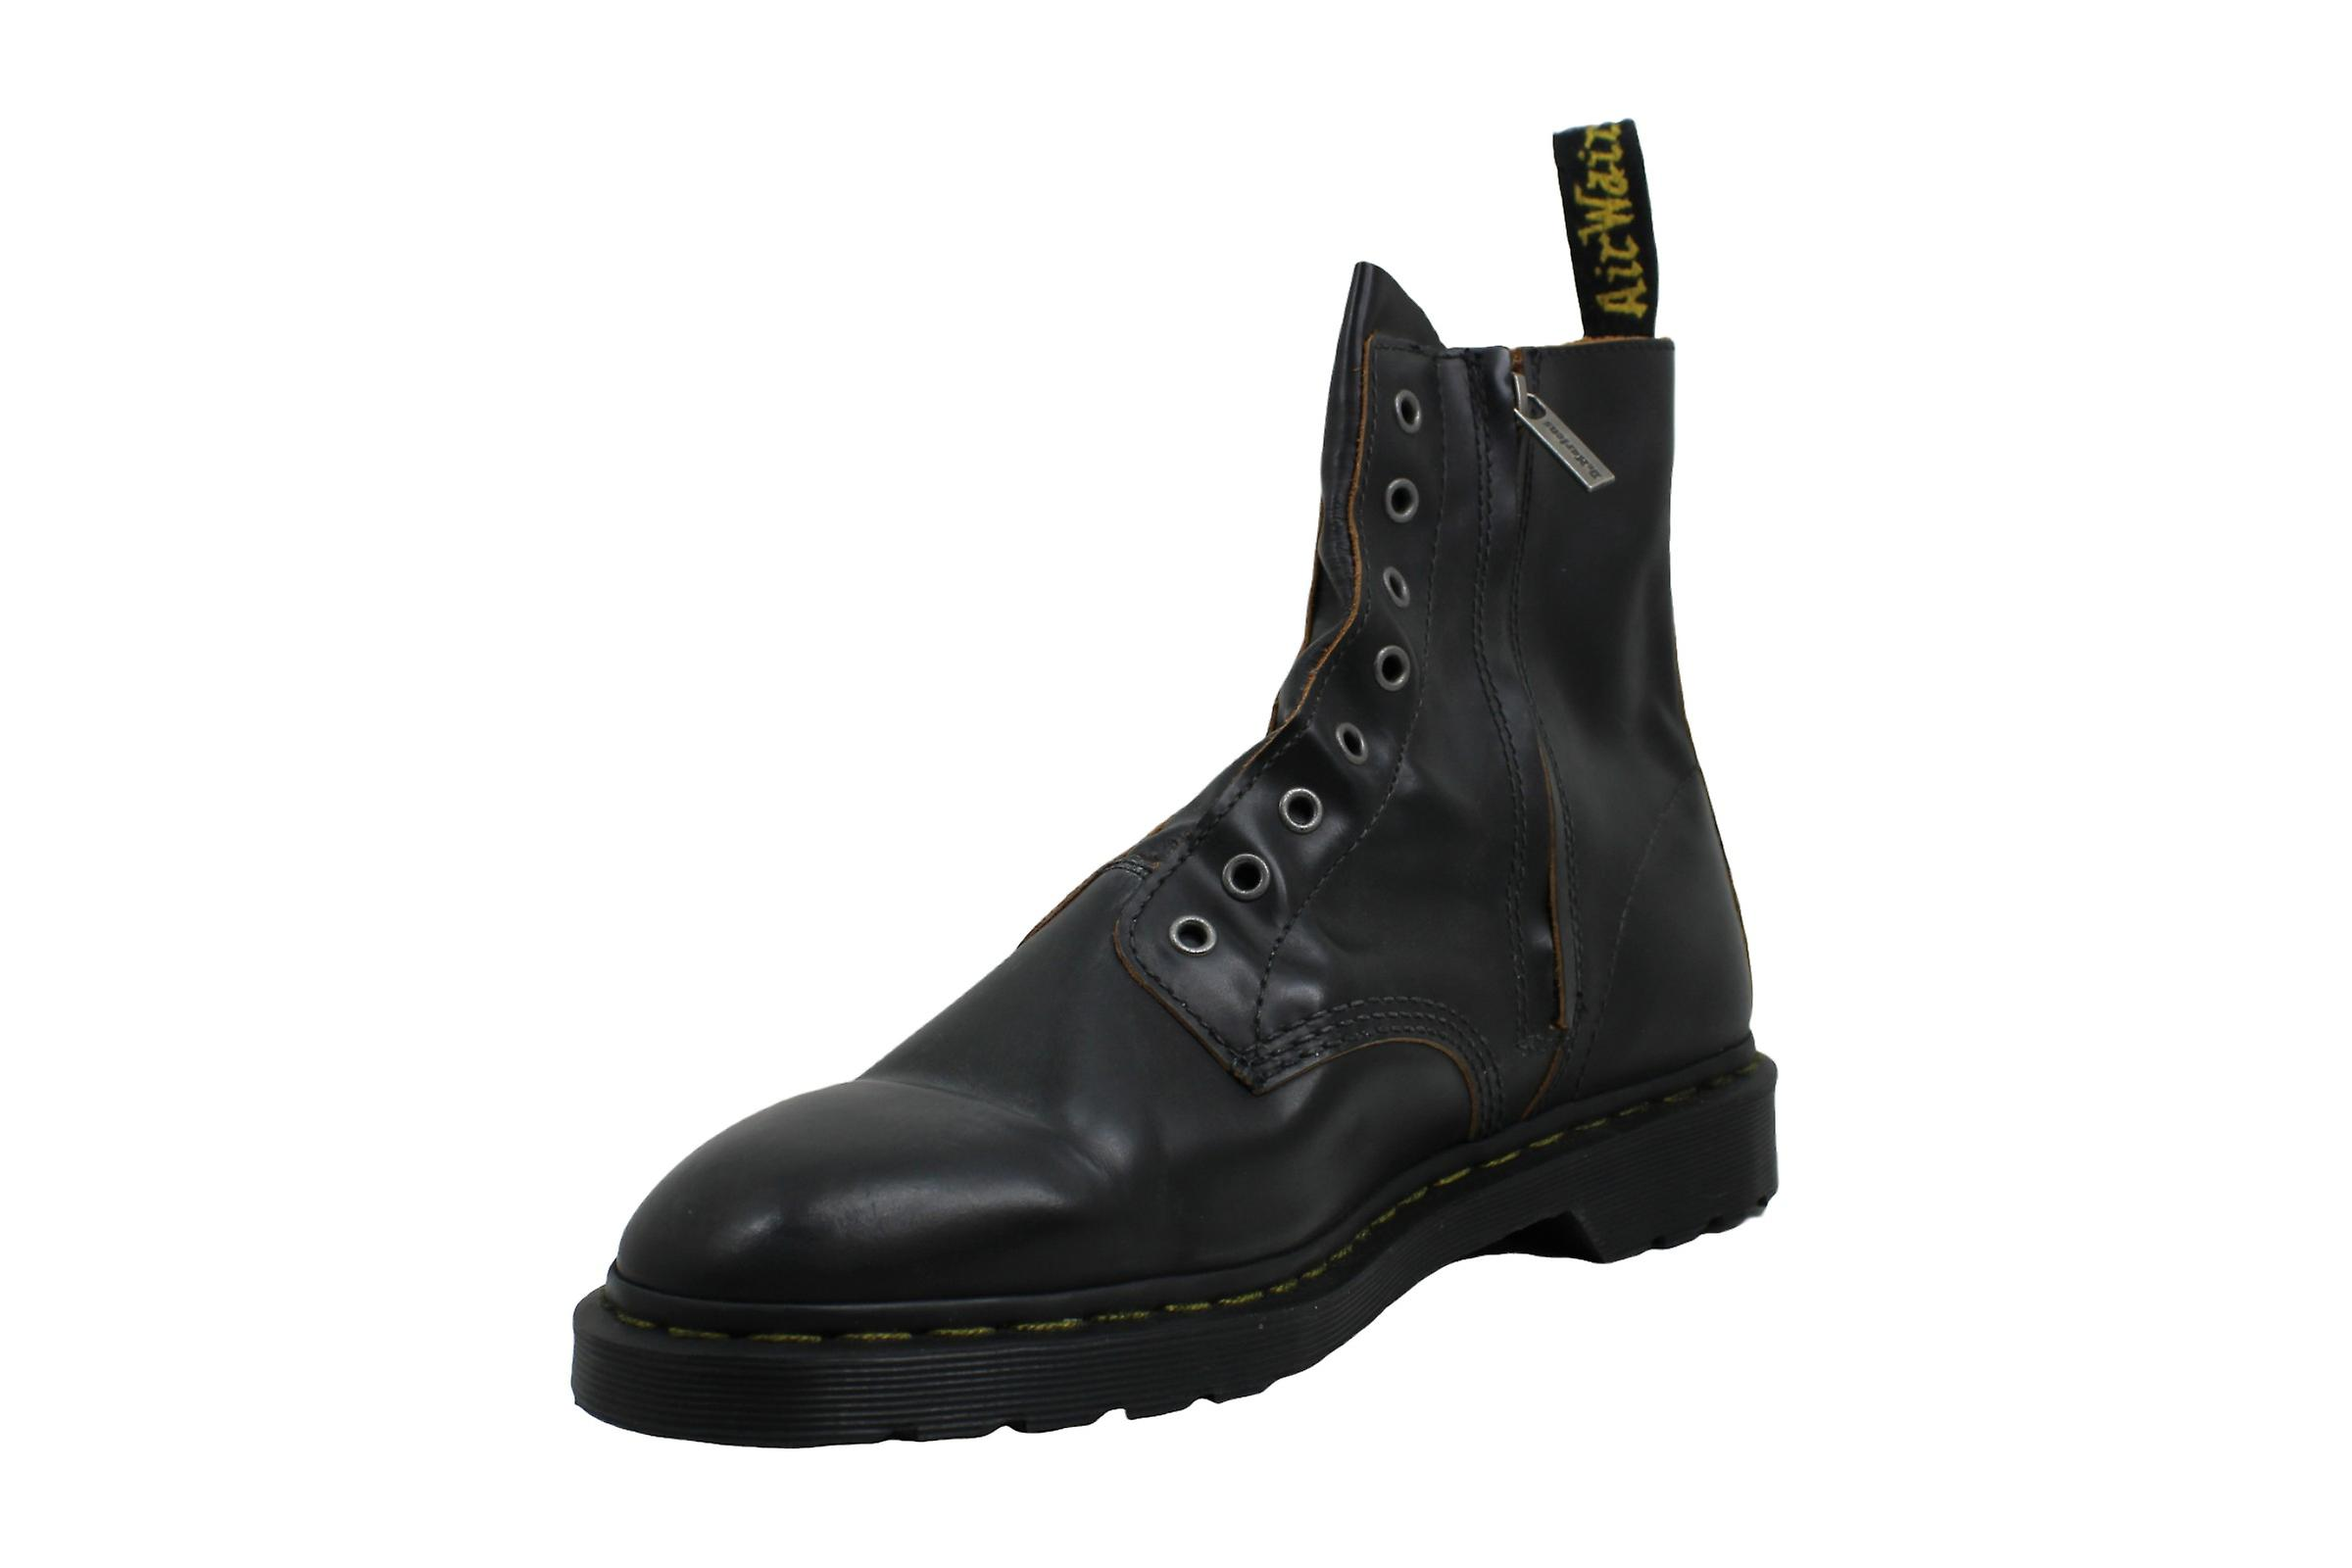 Dr. Martens Womens 43664 Leather Closed Toe Mid-calf Fashion Boots